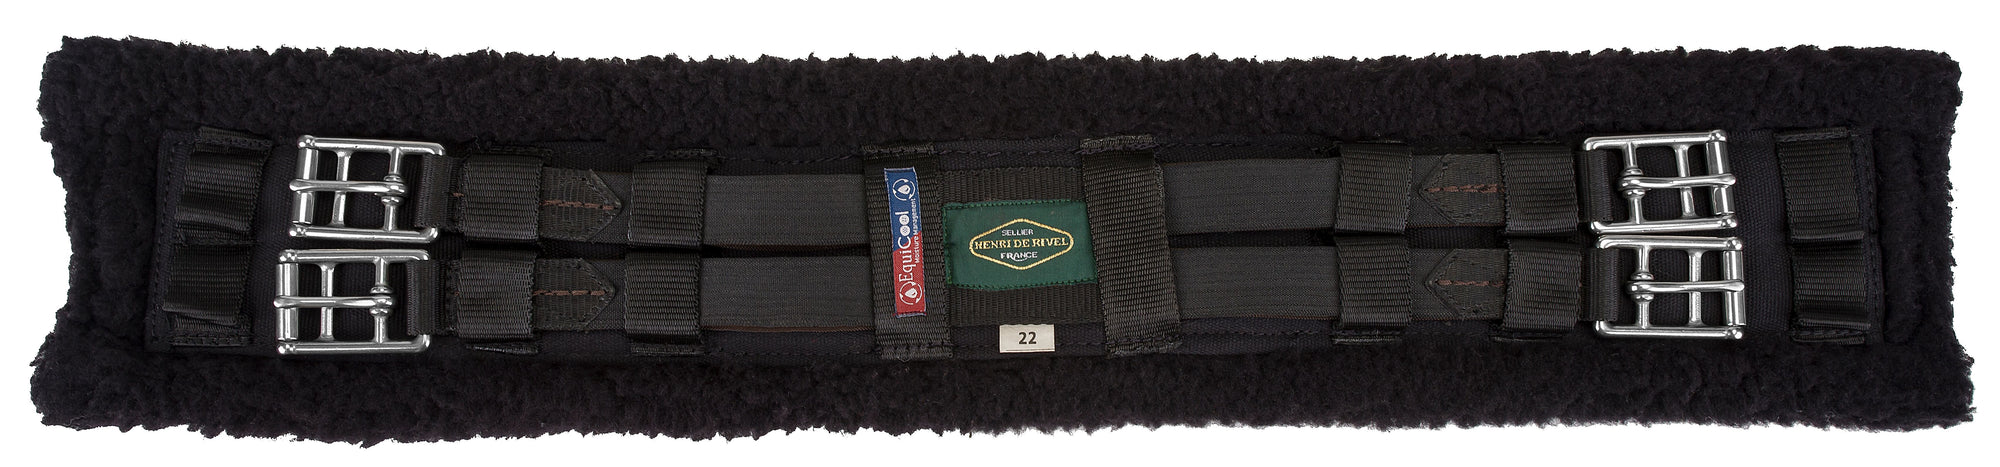 Henri de Rivel Dressage EquiCool Fleece Girth - Henri de Rivel - Breeches.com